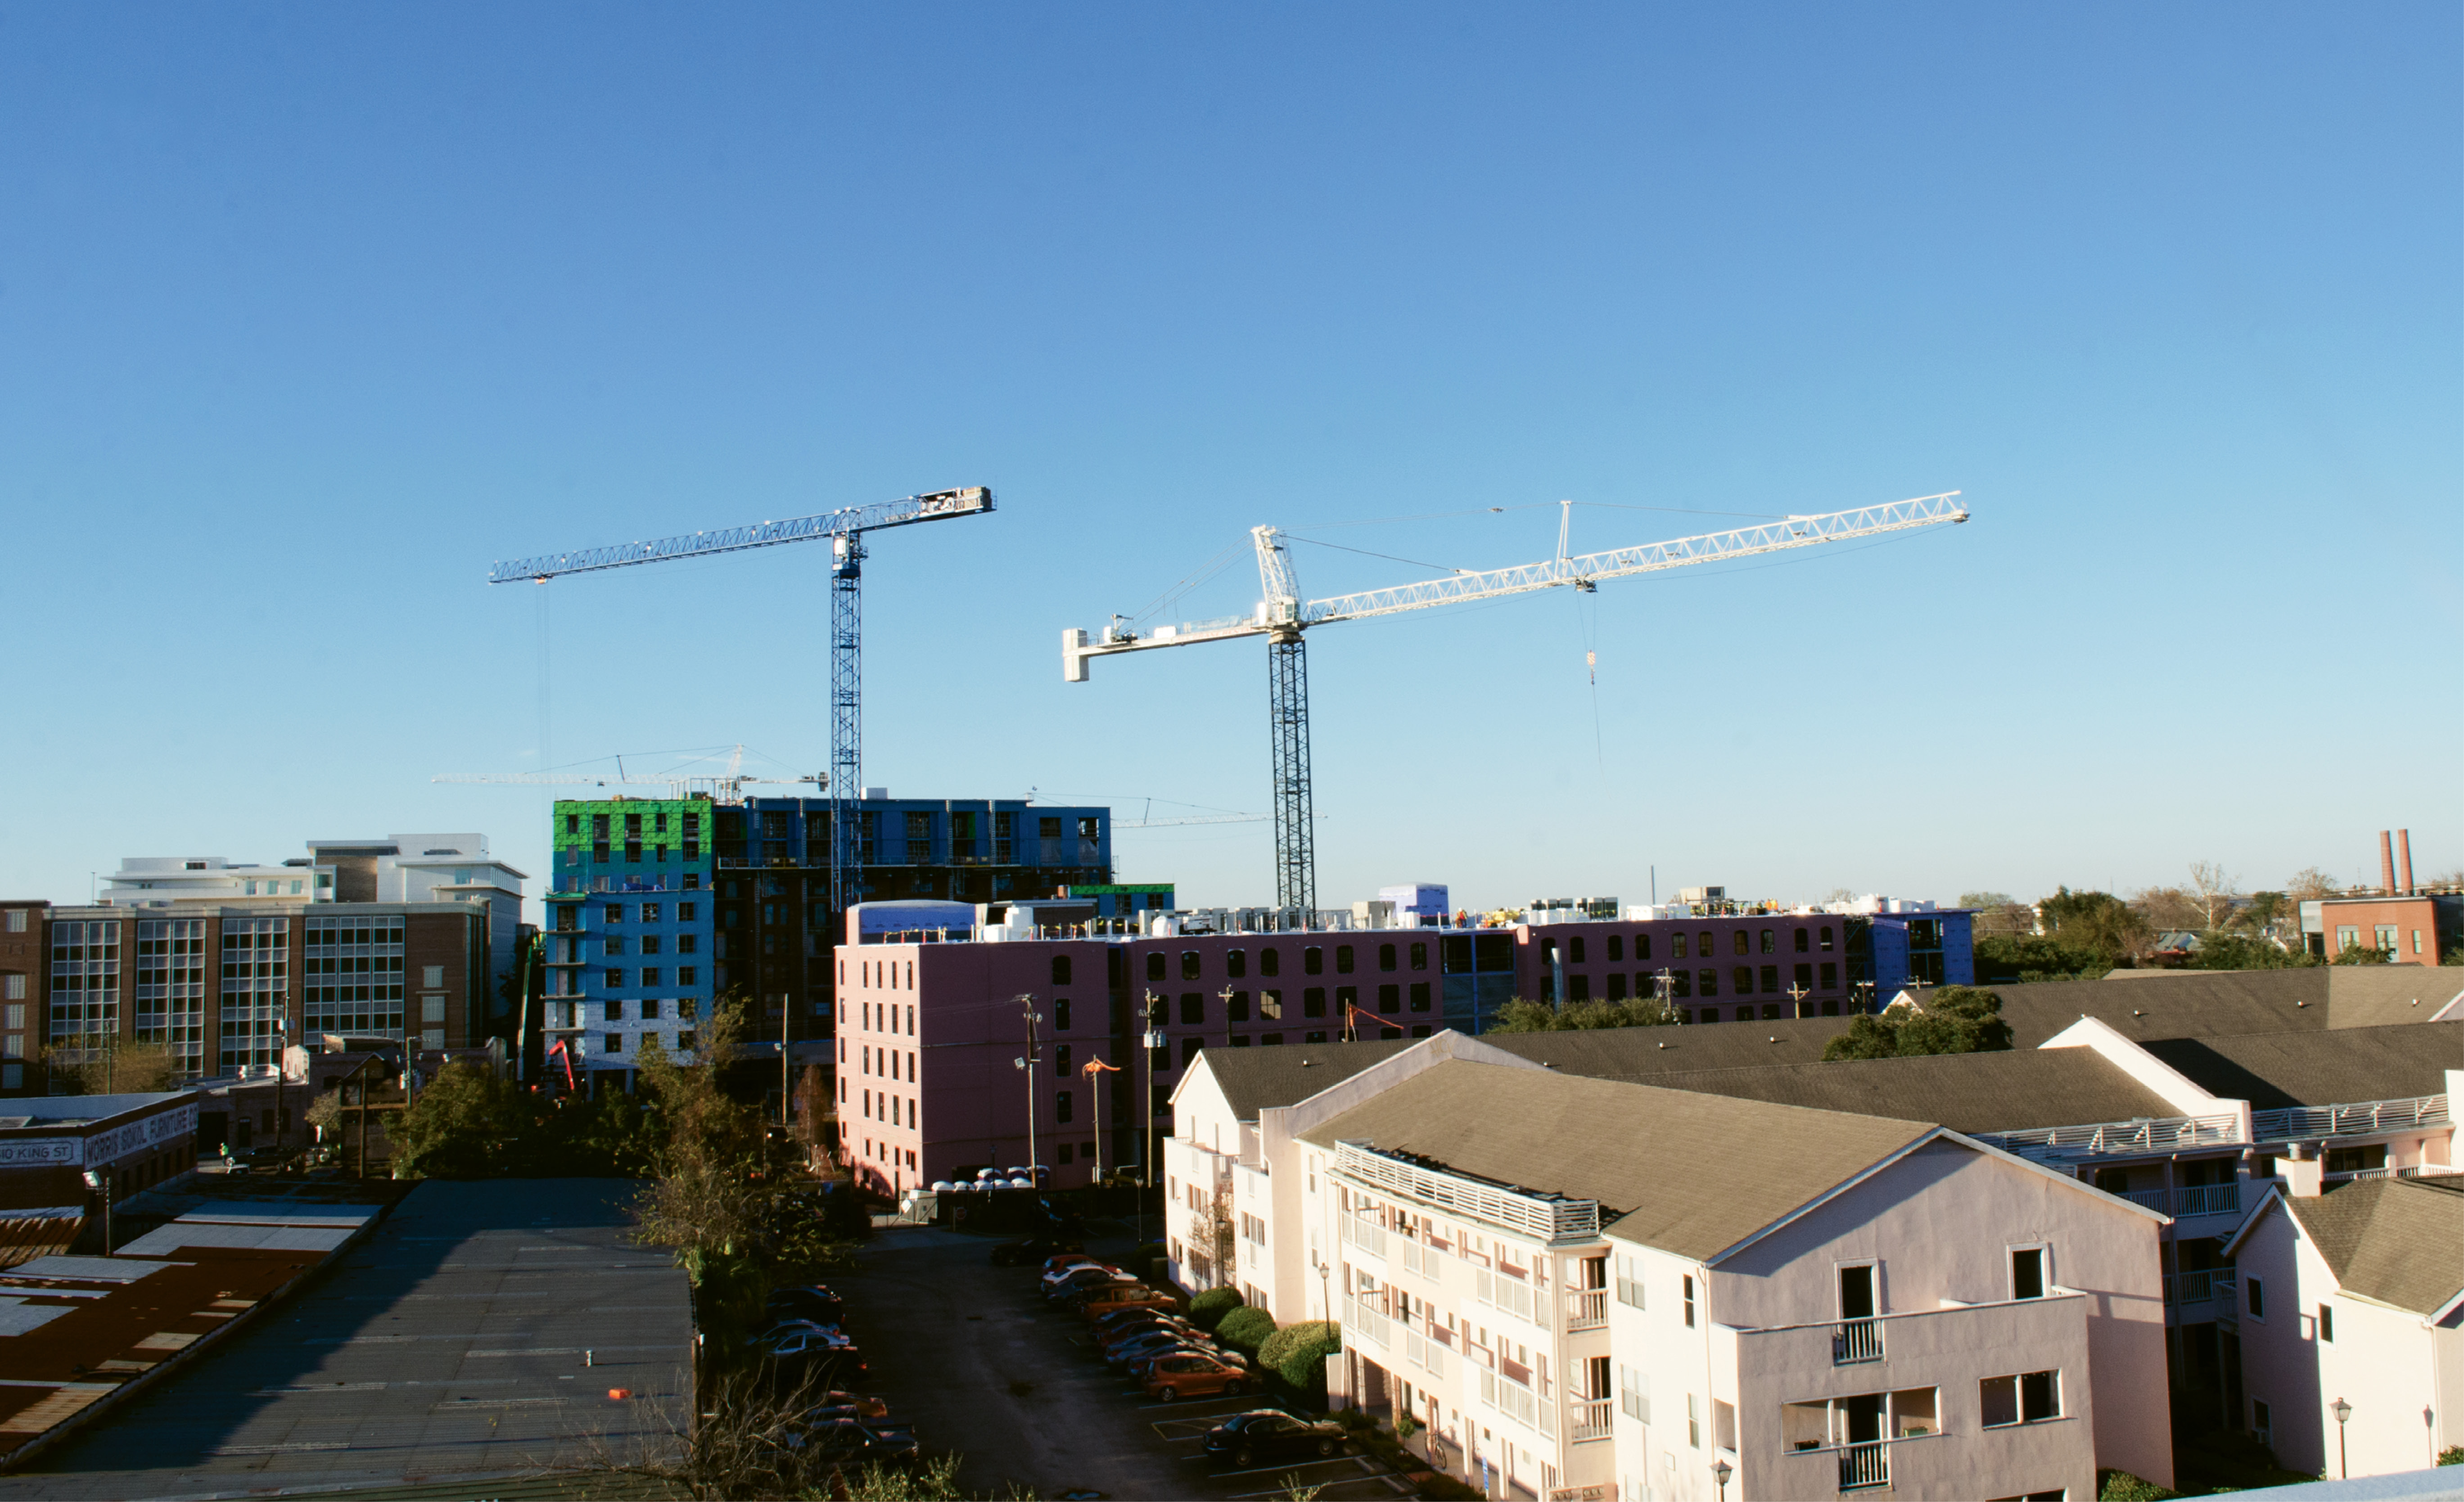 For a few years, construction cranes have dominated the downtown skyline. At right is the Courtyards at 411 Meeting Street complex, under-market rental apartments that are slated to become a 300-room hotel.